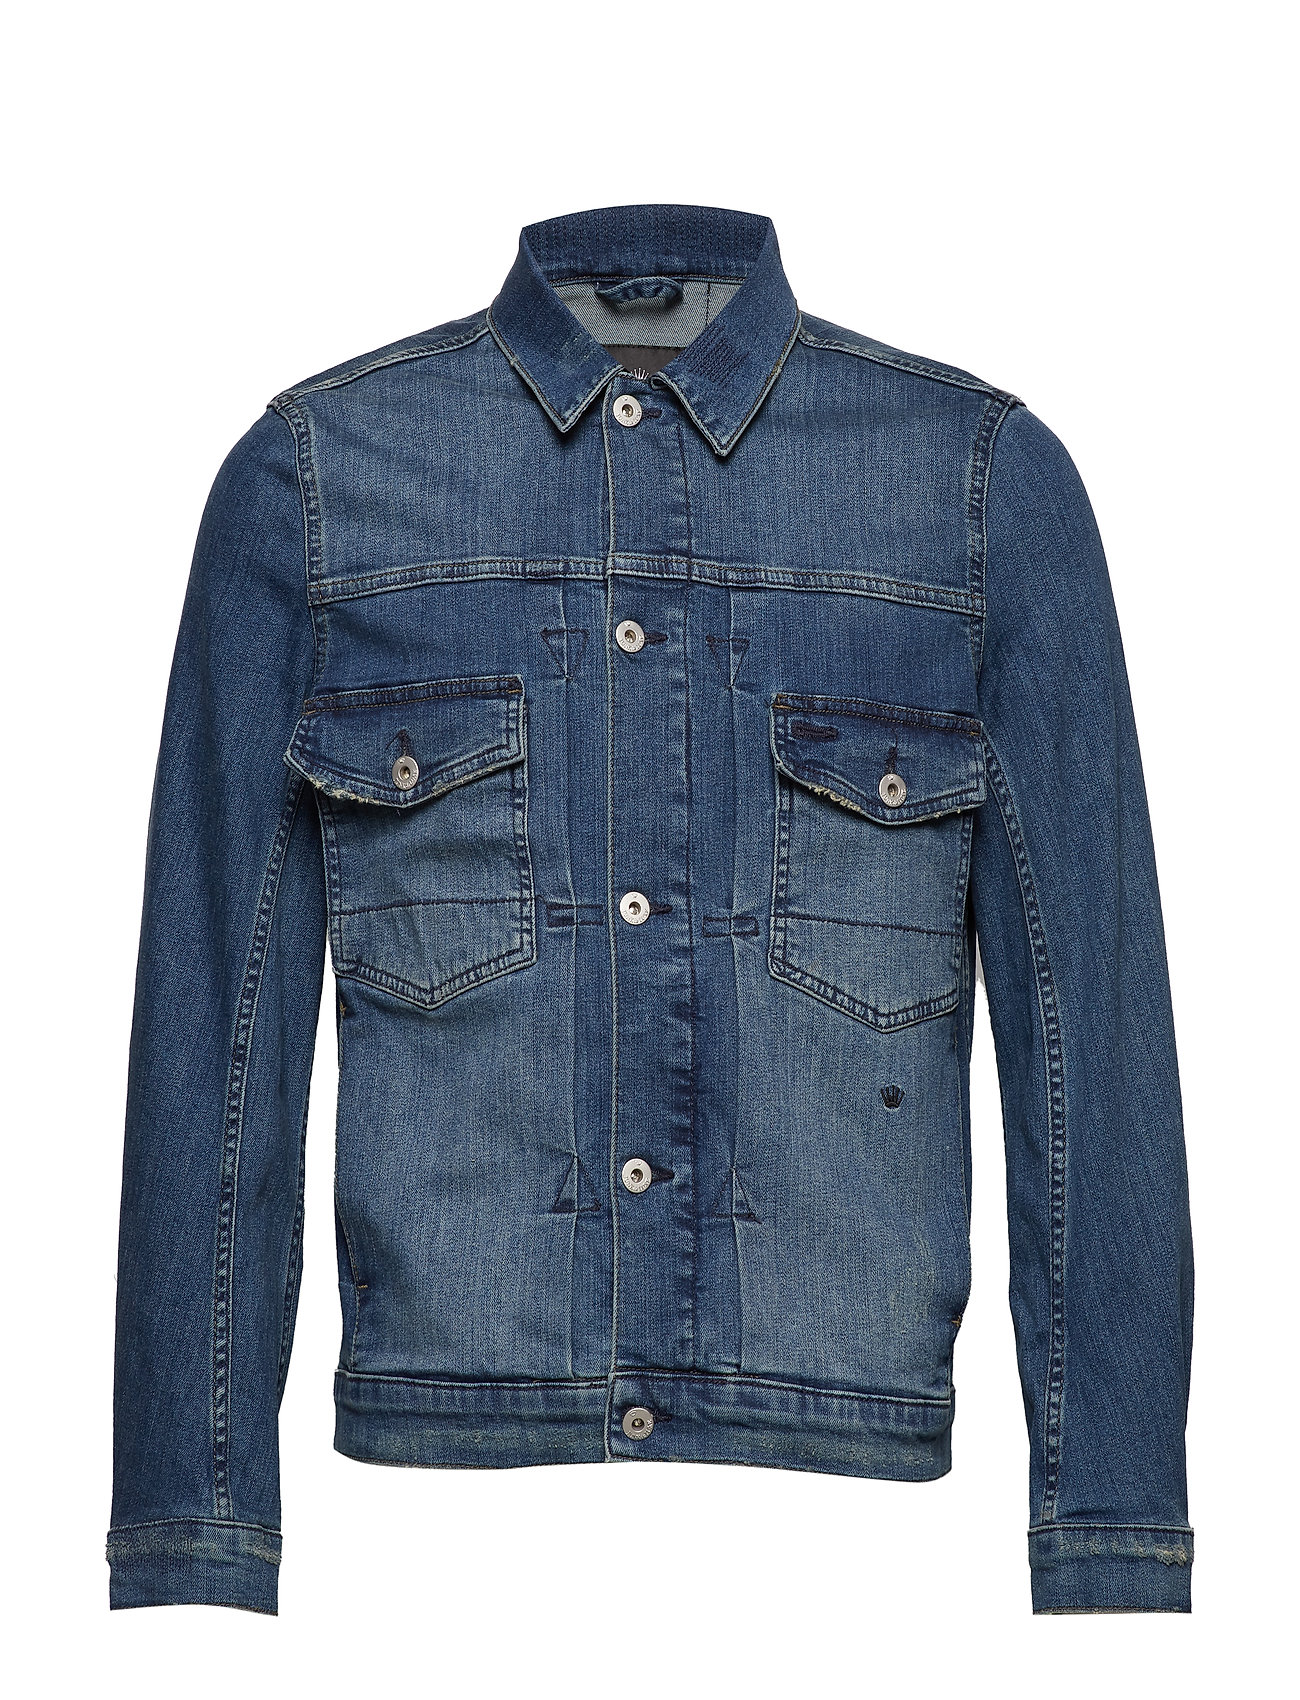 JUNK de LUXE Washed denim jacket - WASH INDIGO